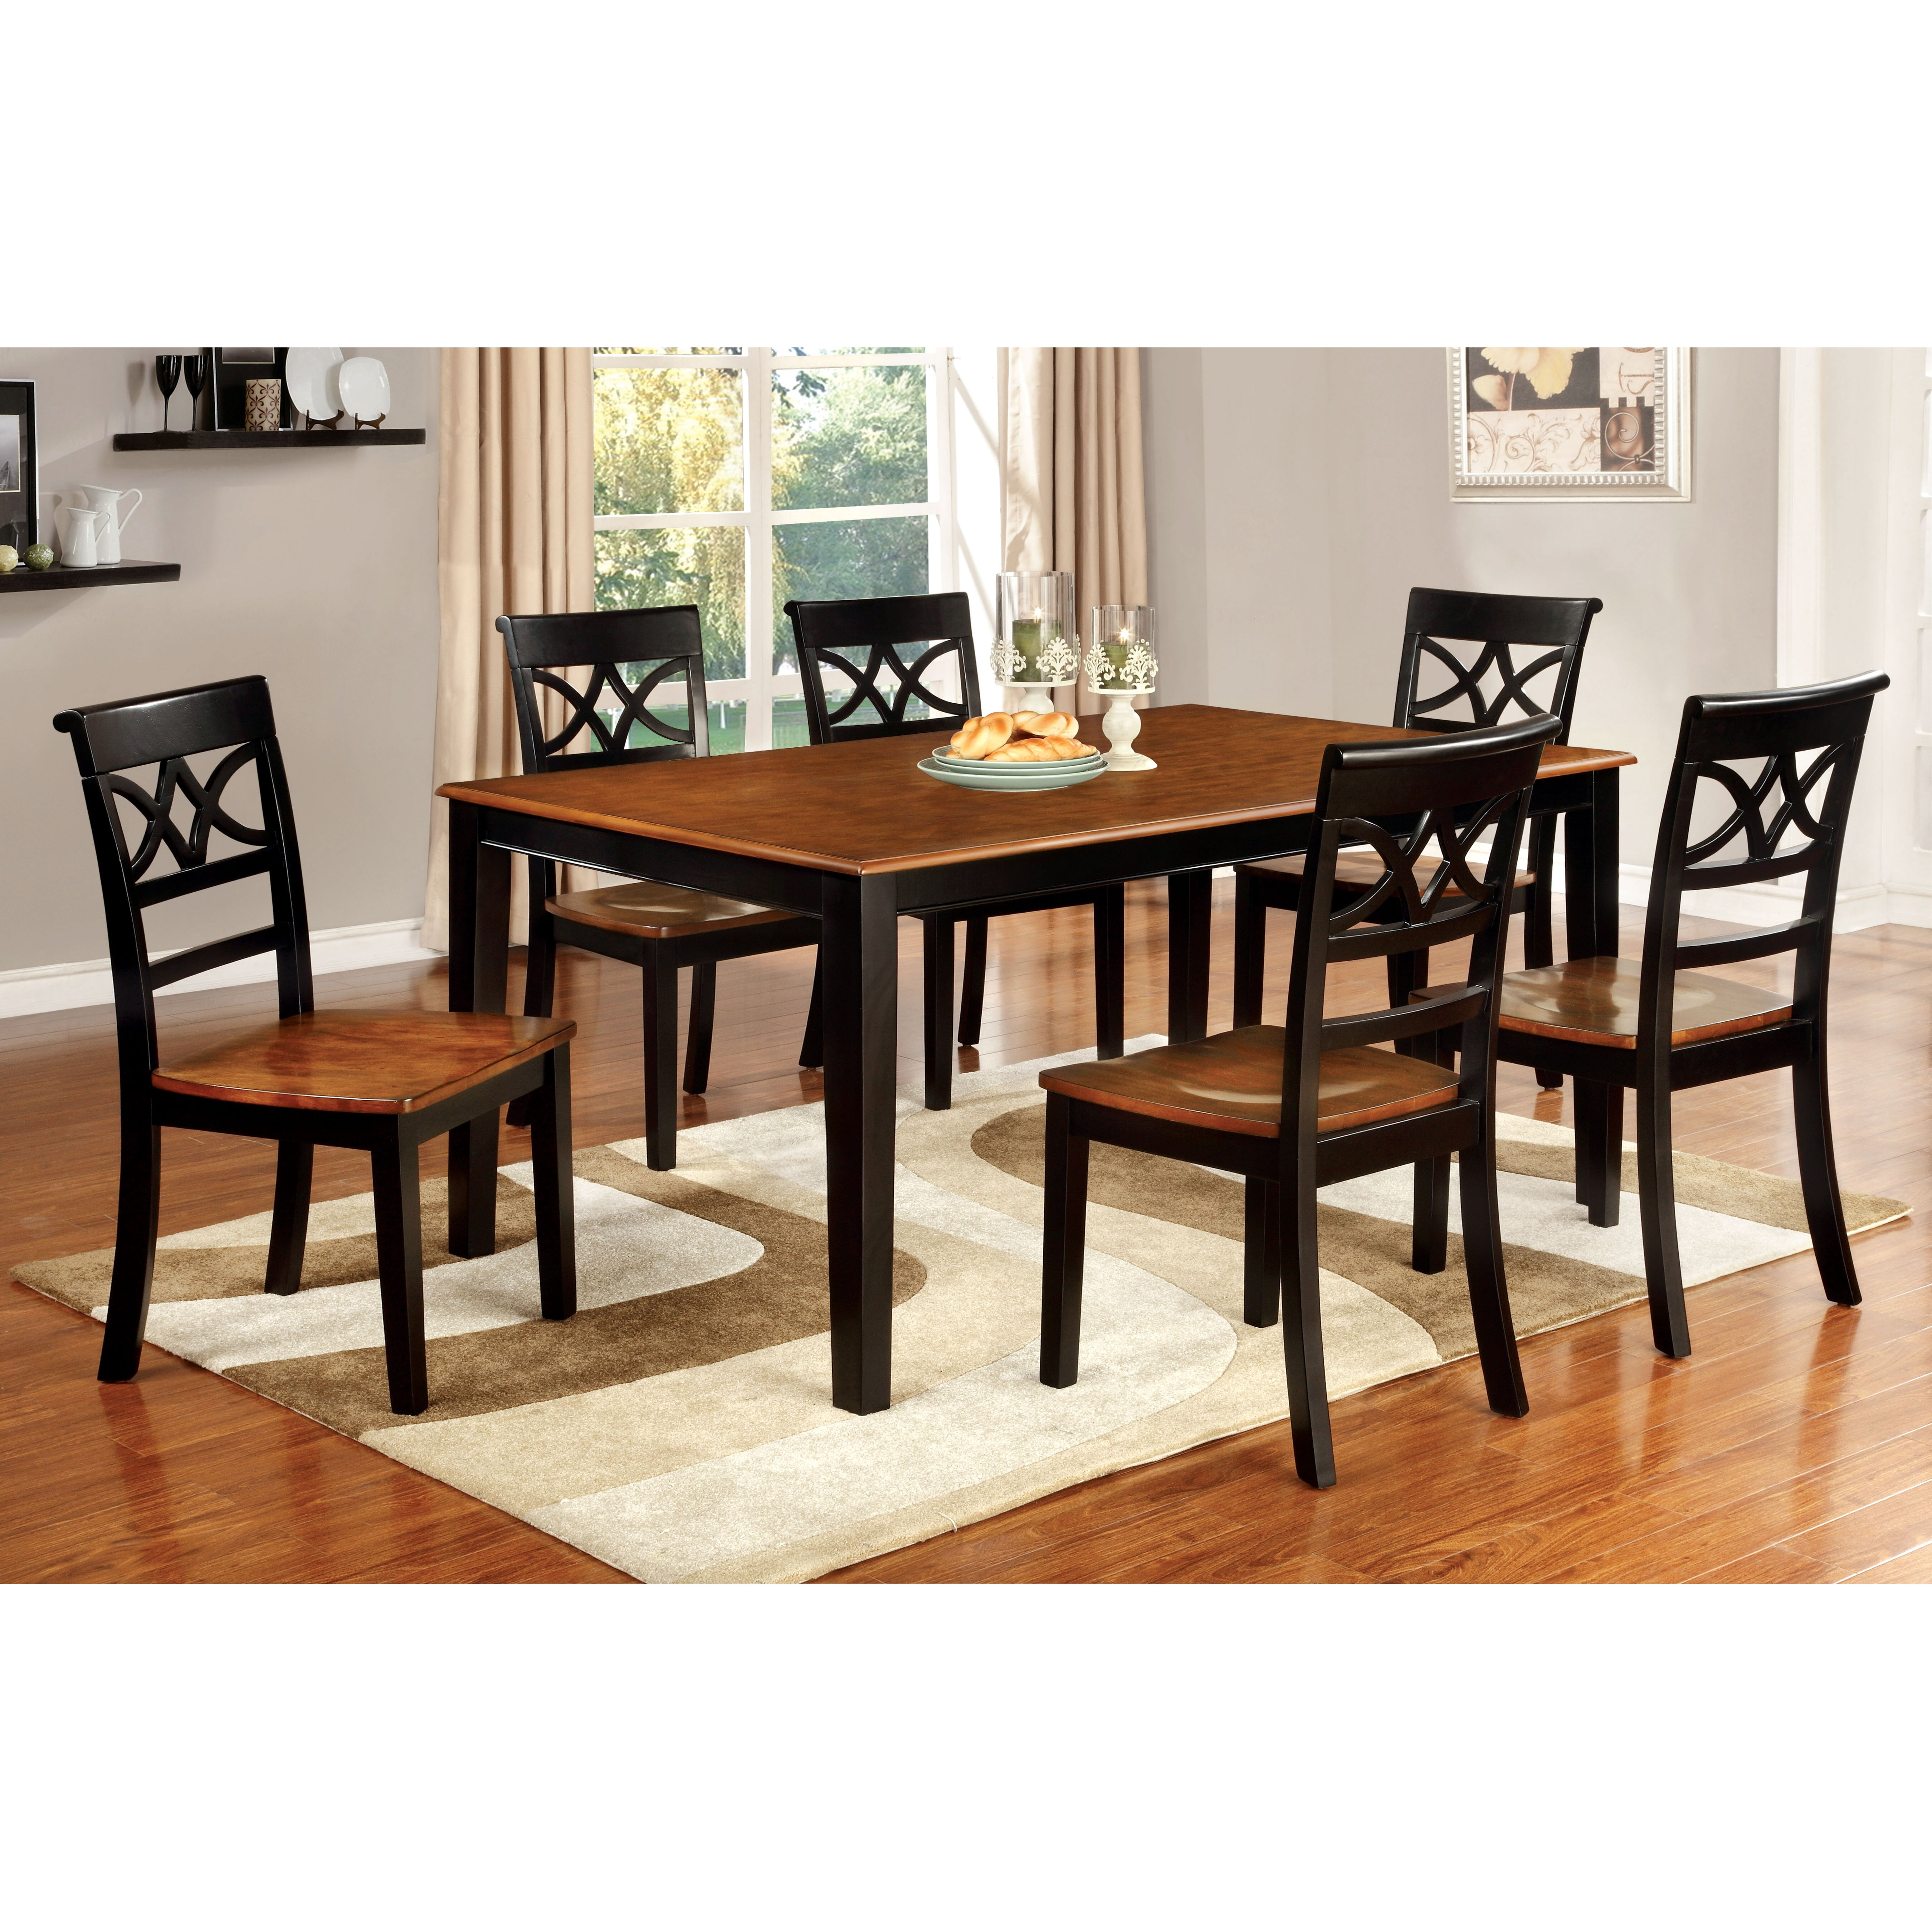 Hokku designs exenia 7 piece dining set reviews wayfair Dining set design ideas